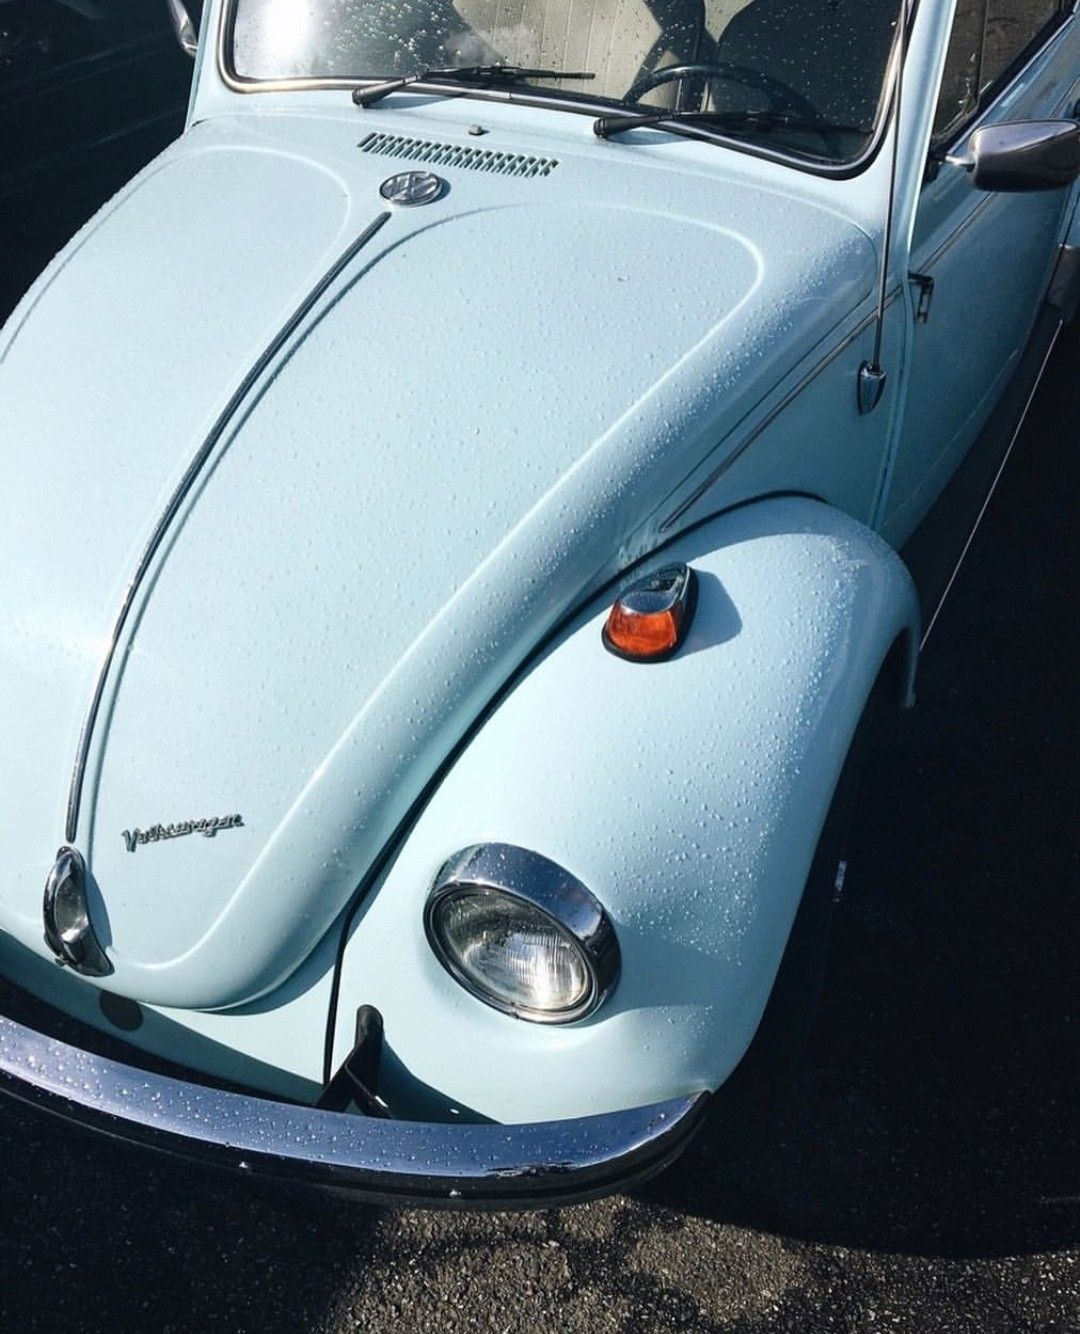 old vw bug, baby blue Classic cars, Blue car, Classic